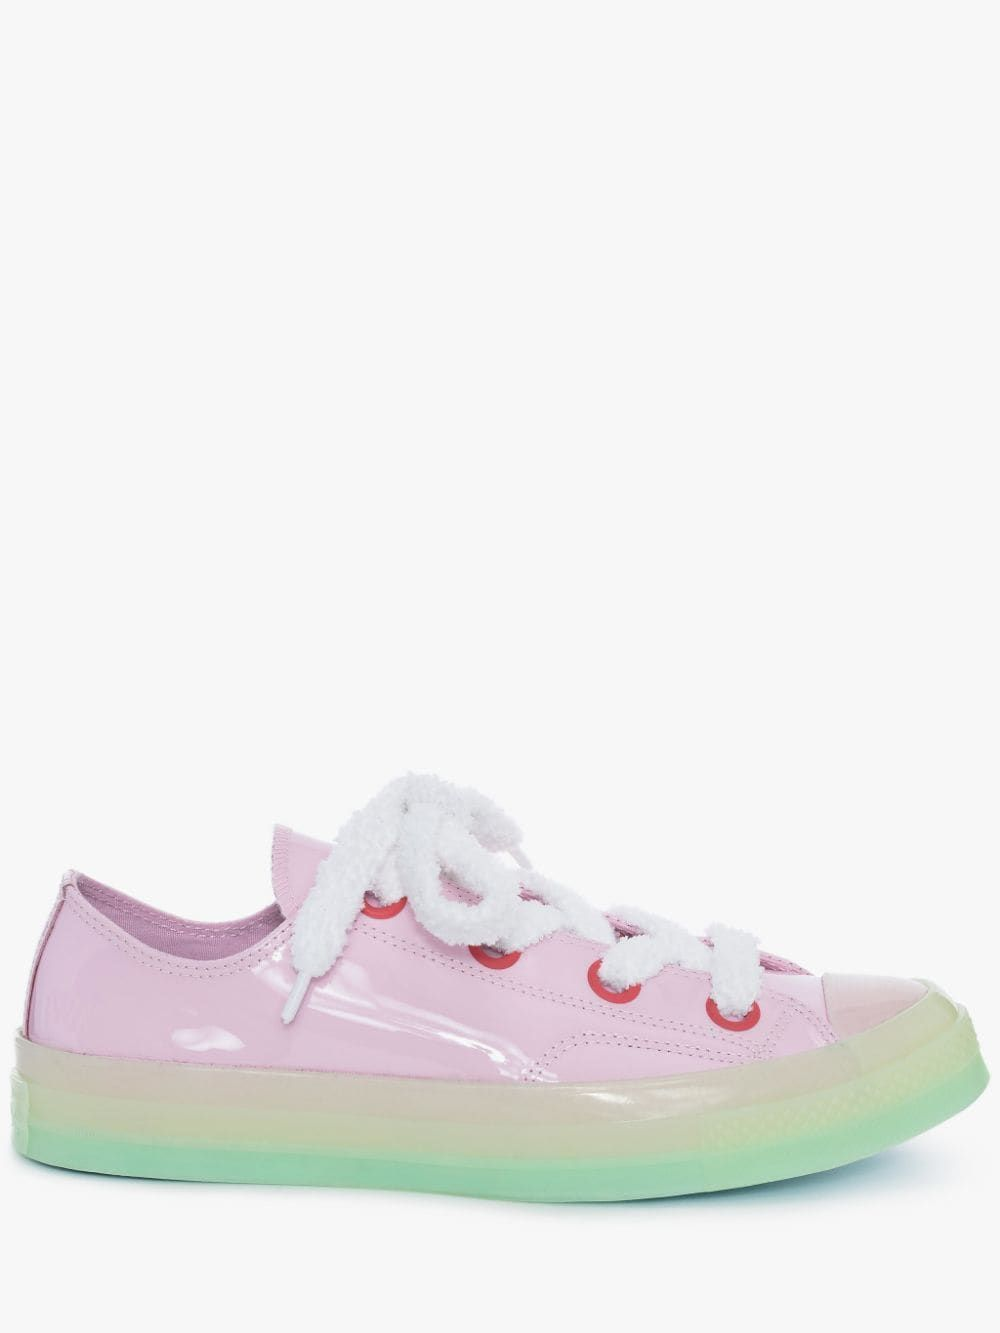 Light Pink Patent Low Top Chuck Taylor